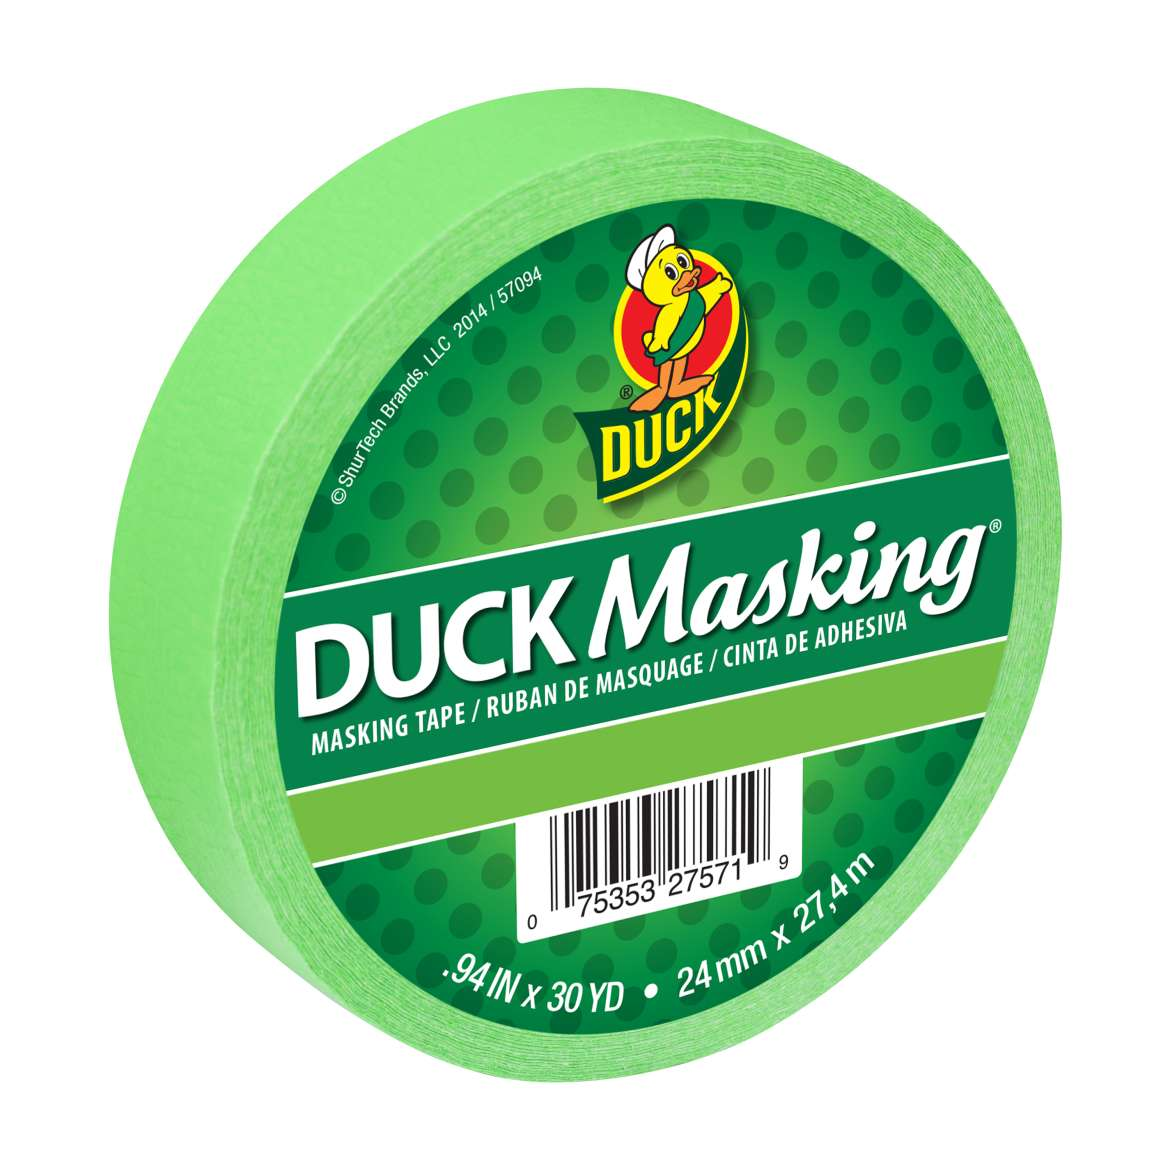 Duck Masking® Color Masking Tape - Light Green, .94 in. x 30 yd. Image